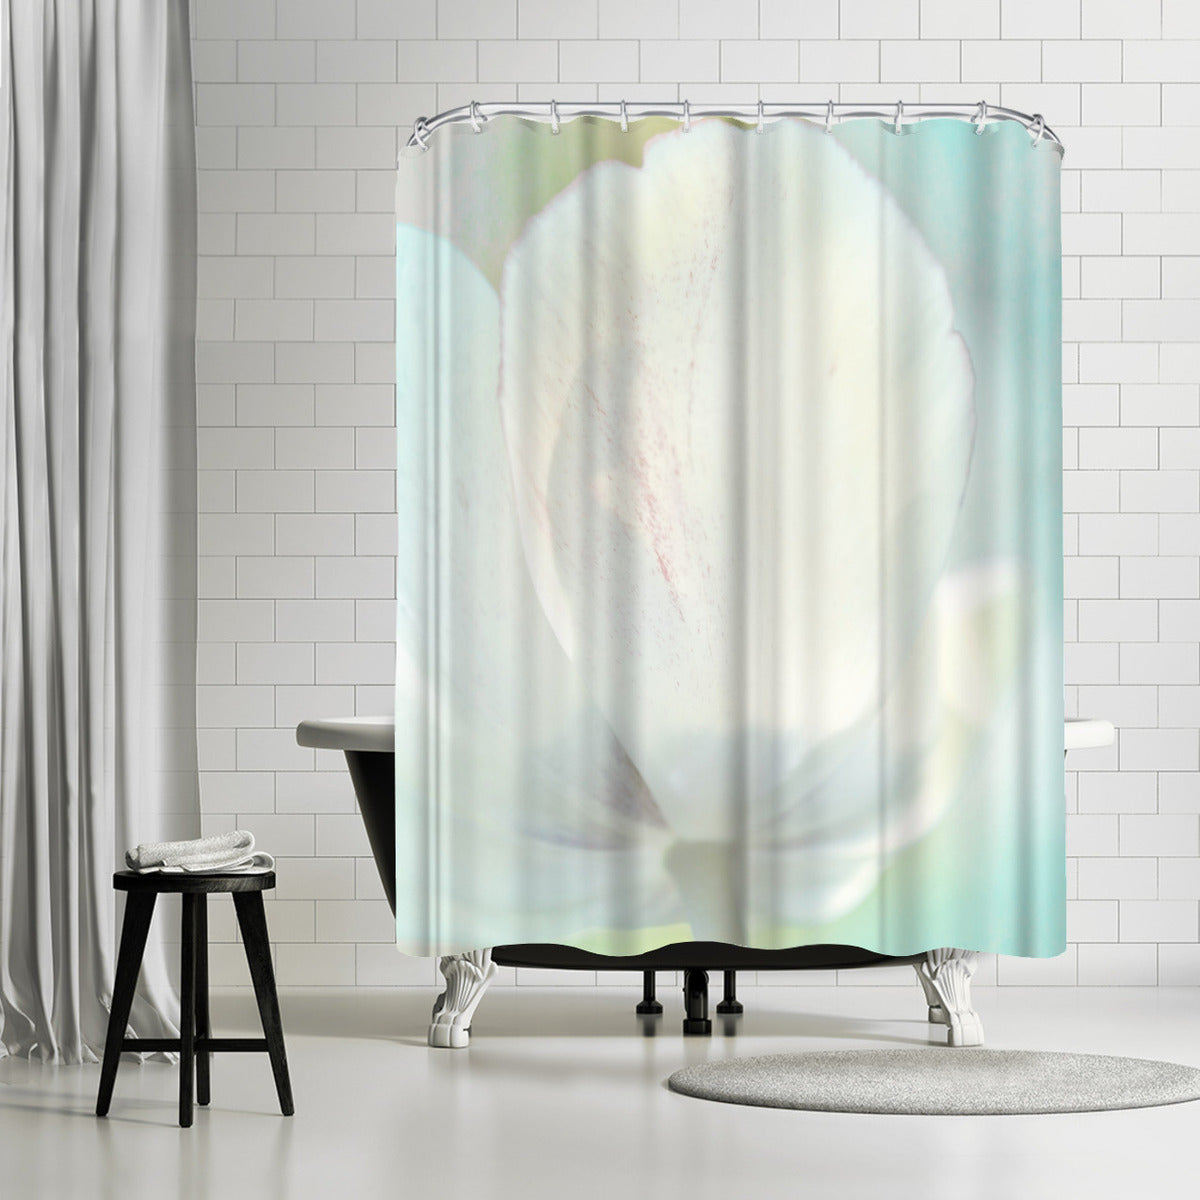 Tulip Sonnet by Mirja Paljakka Shower Curtain -  - Americanflat